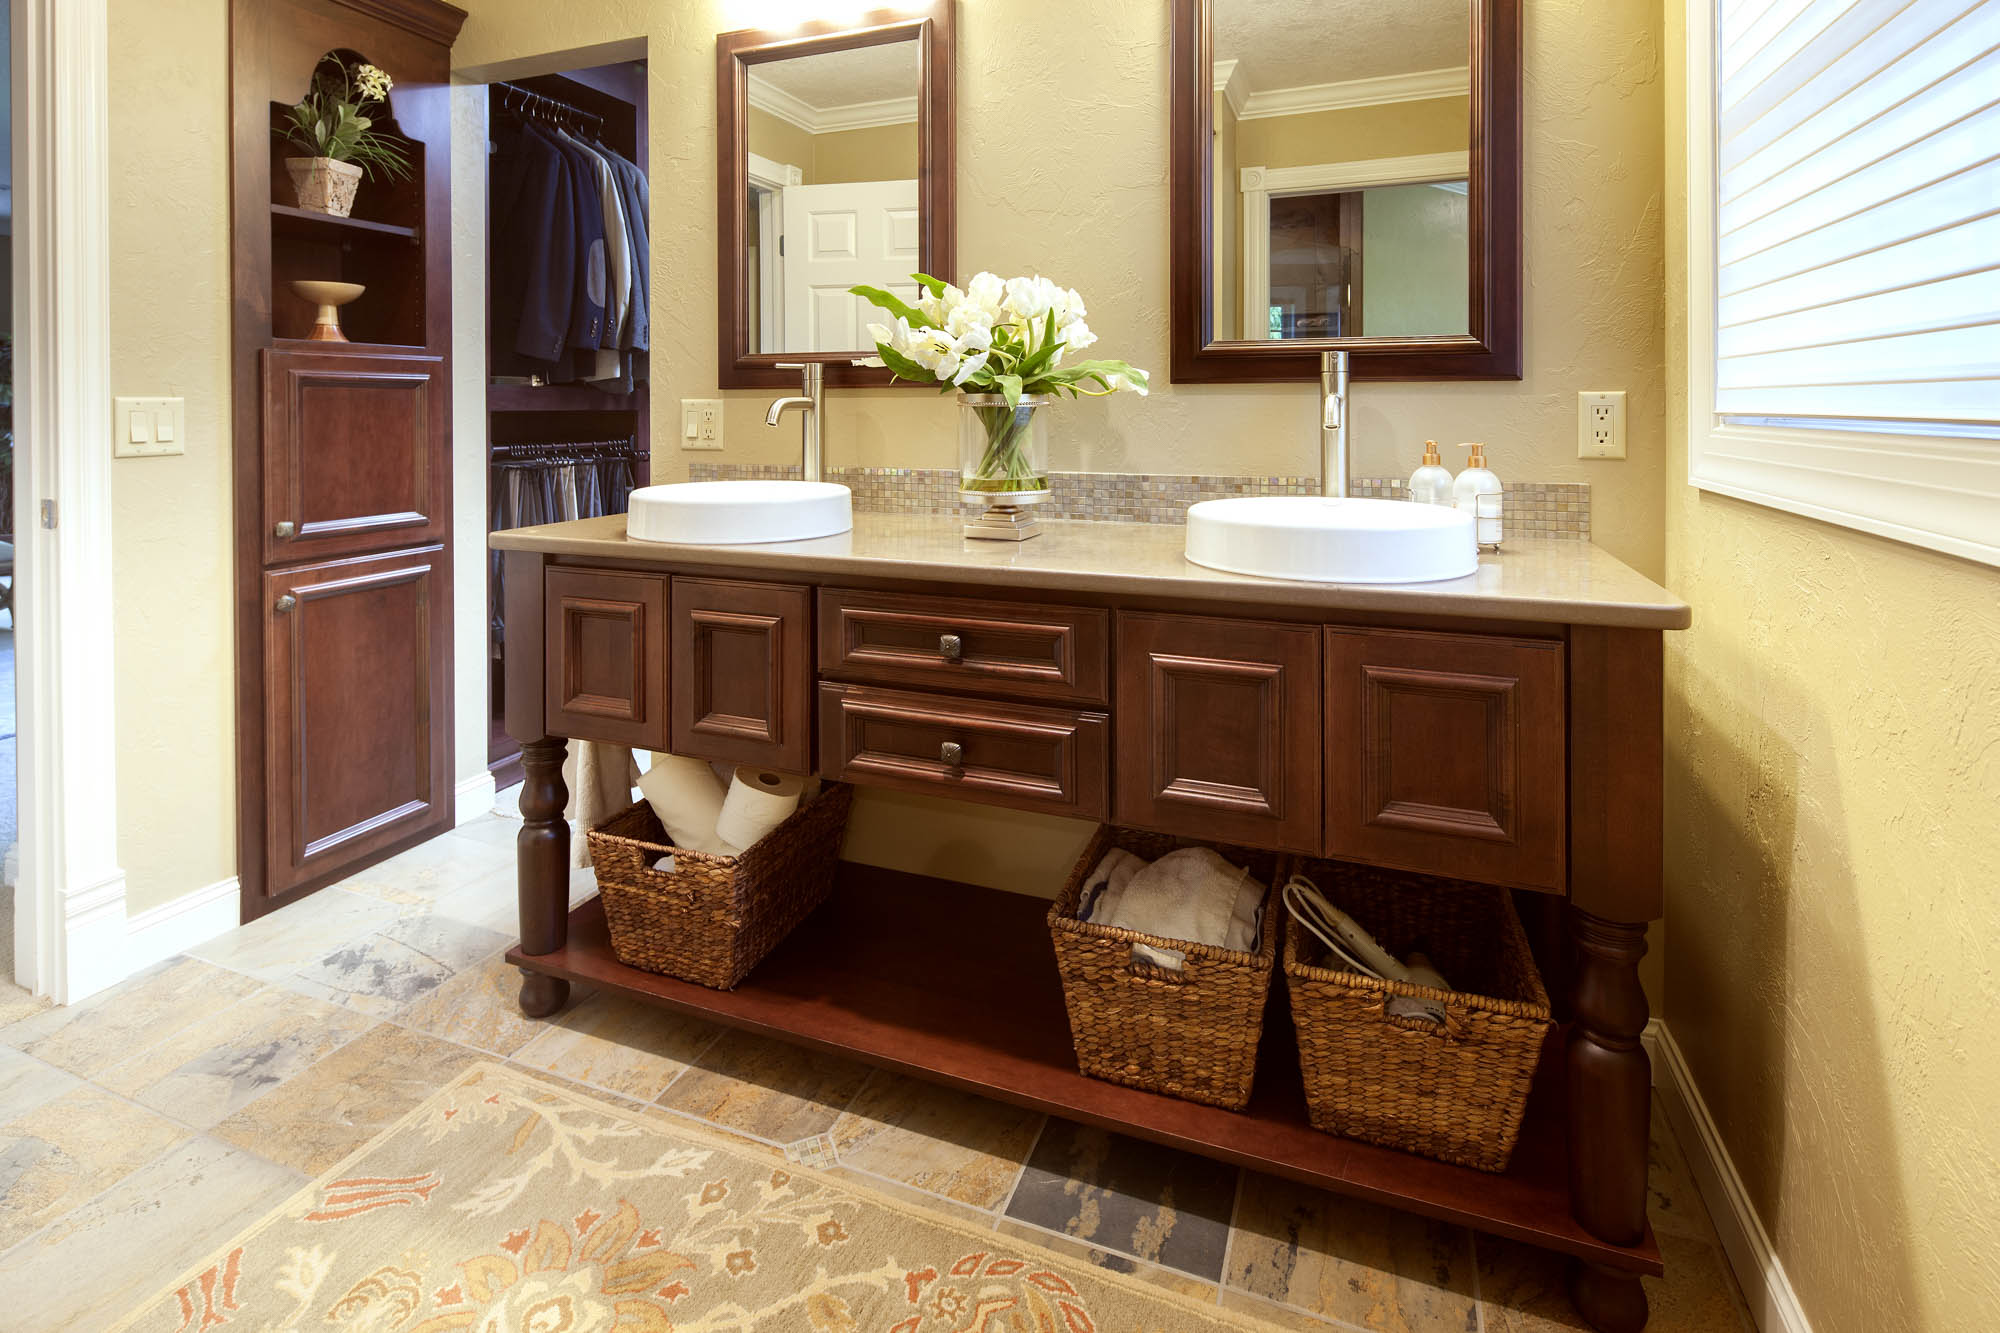 Stained master bathroom cabinets in Brandy by Showplace Cabinetry - view 1